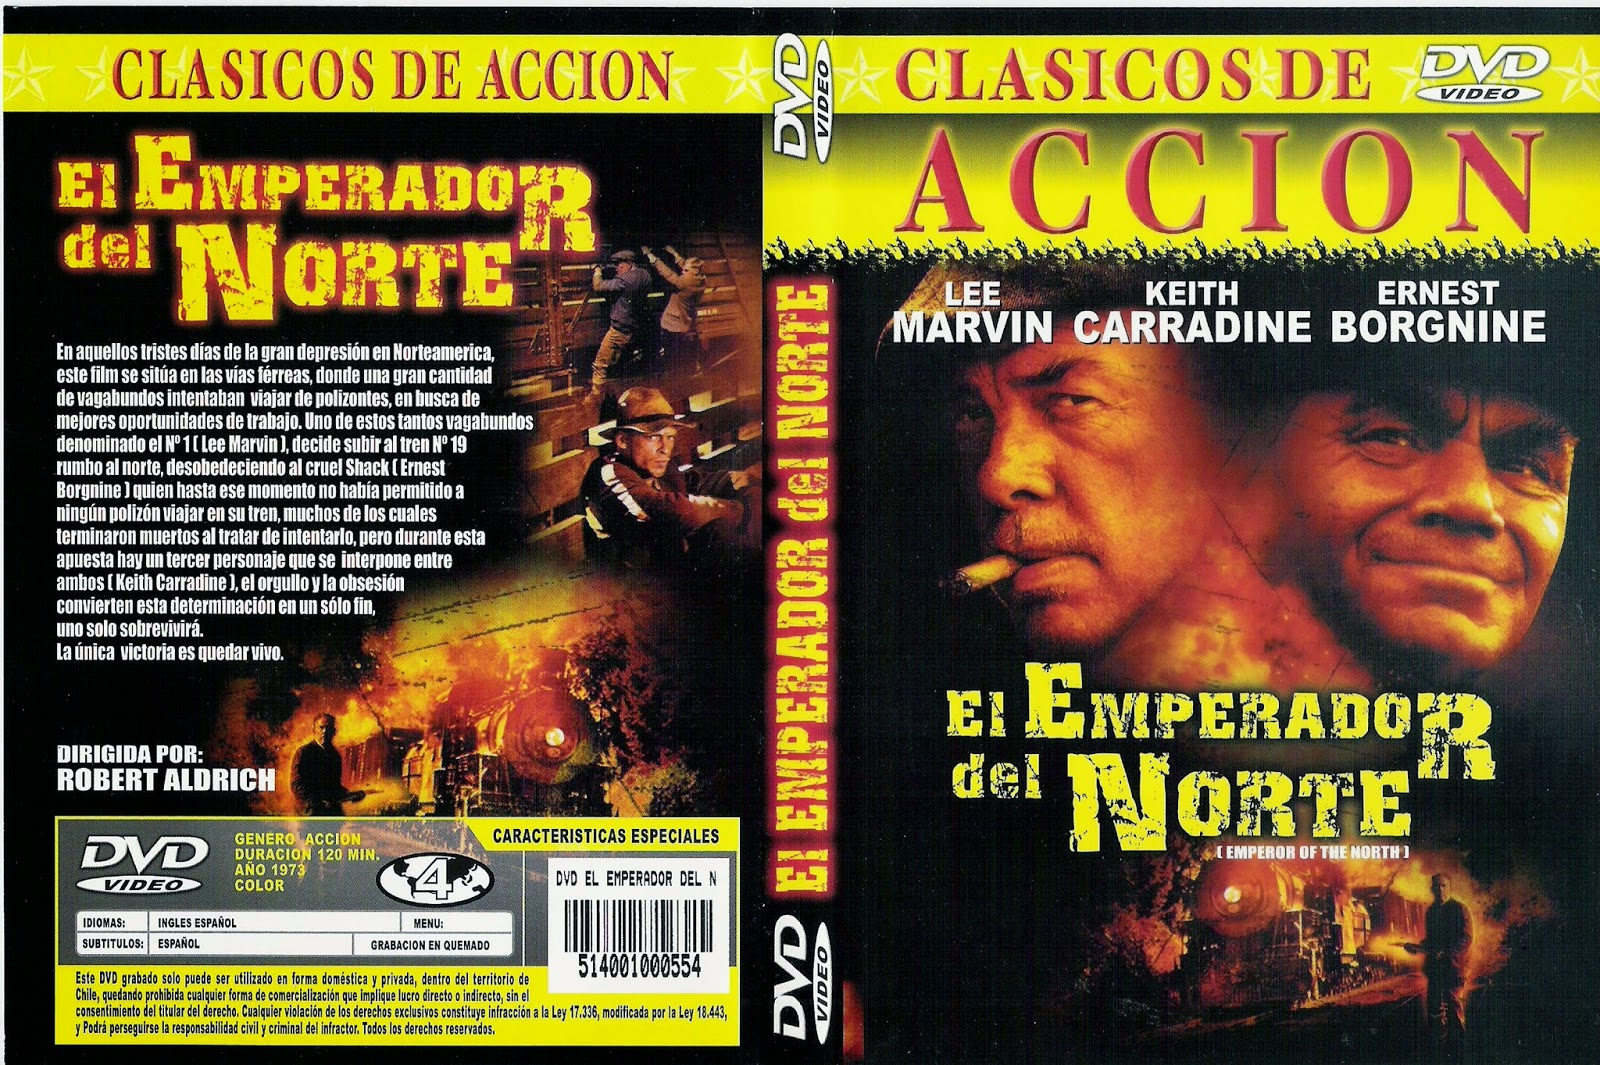 El emperador del norte (Emperor of the North Pole – 1973)